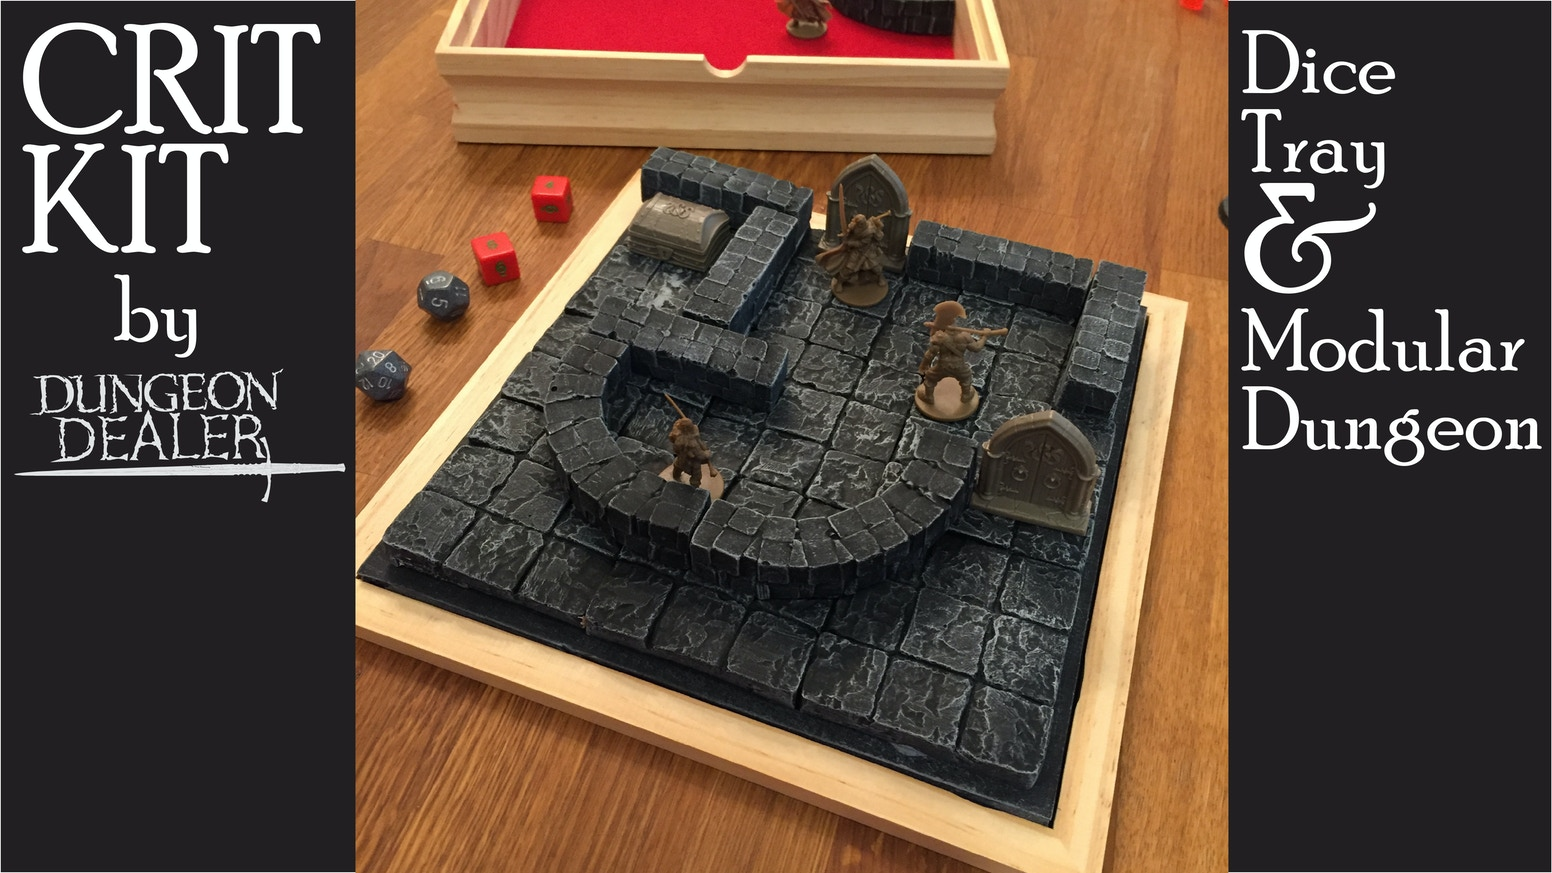 CRIT KIT - Dice Tray and Portable Dungeon with modular walls.